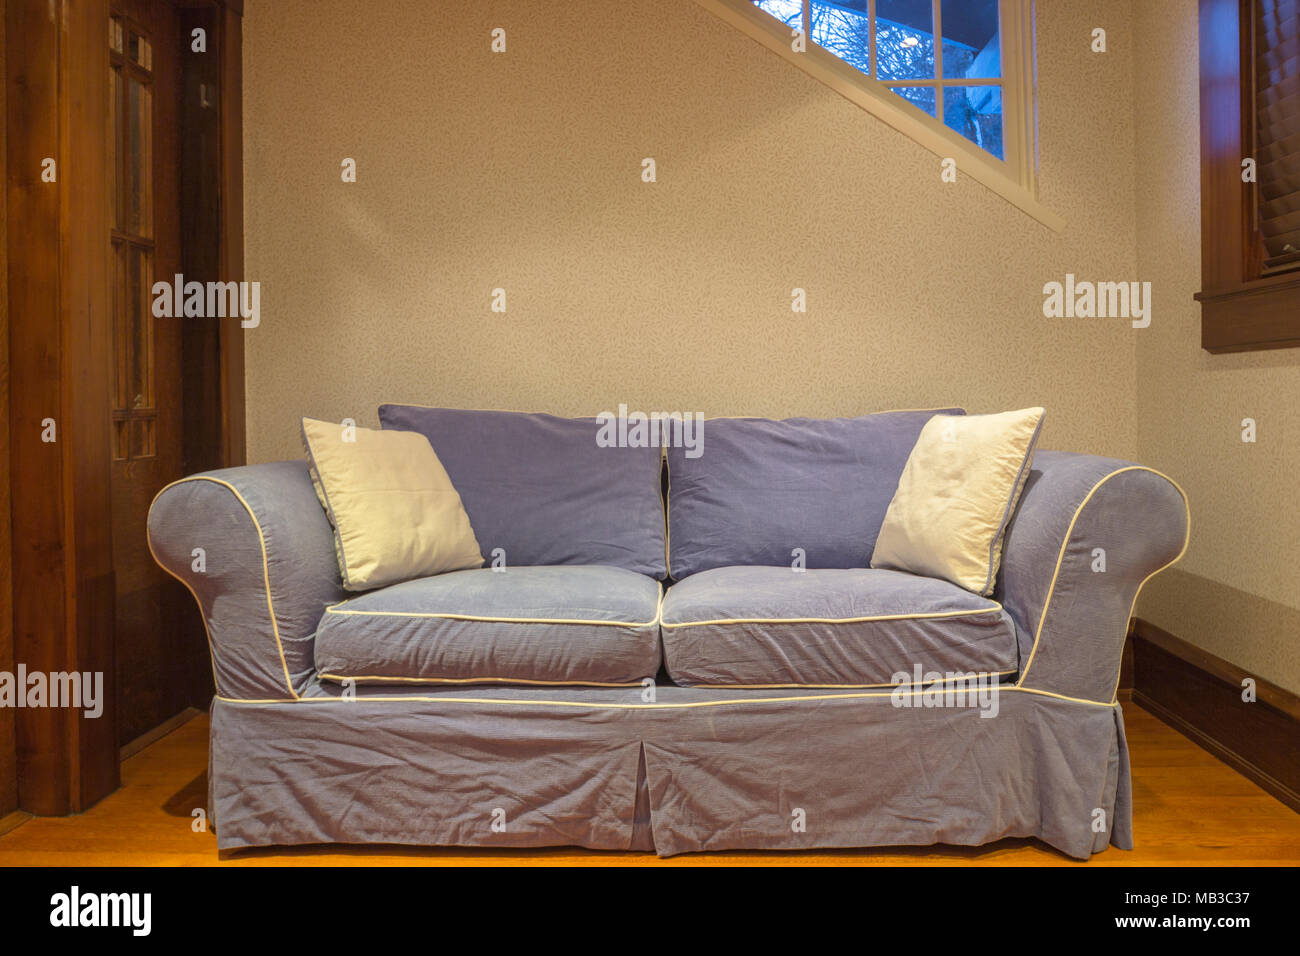 BLUE COUCH ON OAK WOODEN LIVING ROOM FLOOR - Stock Image